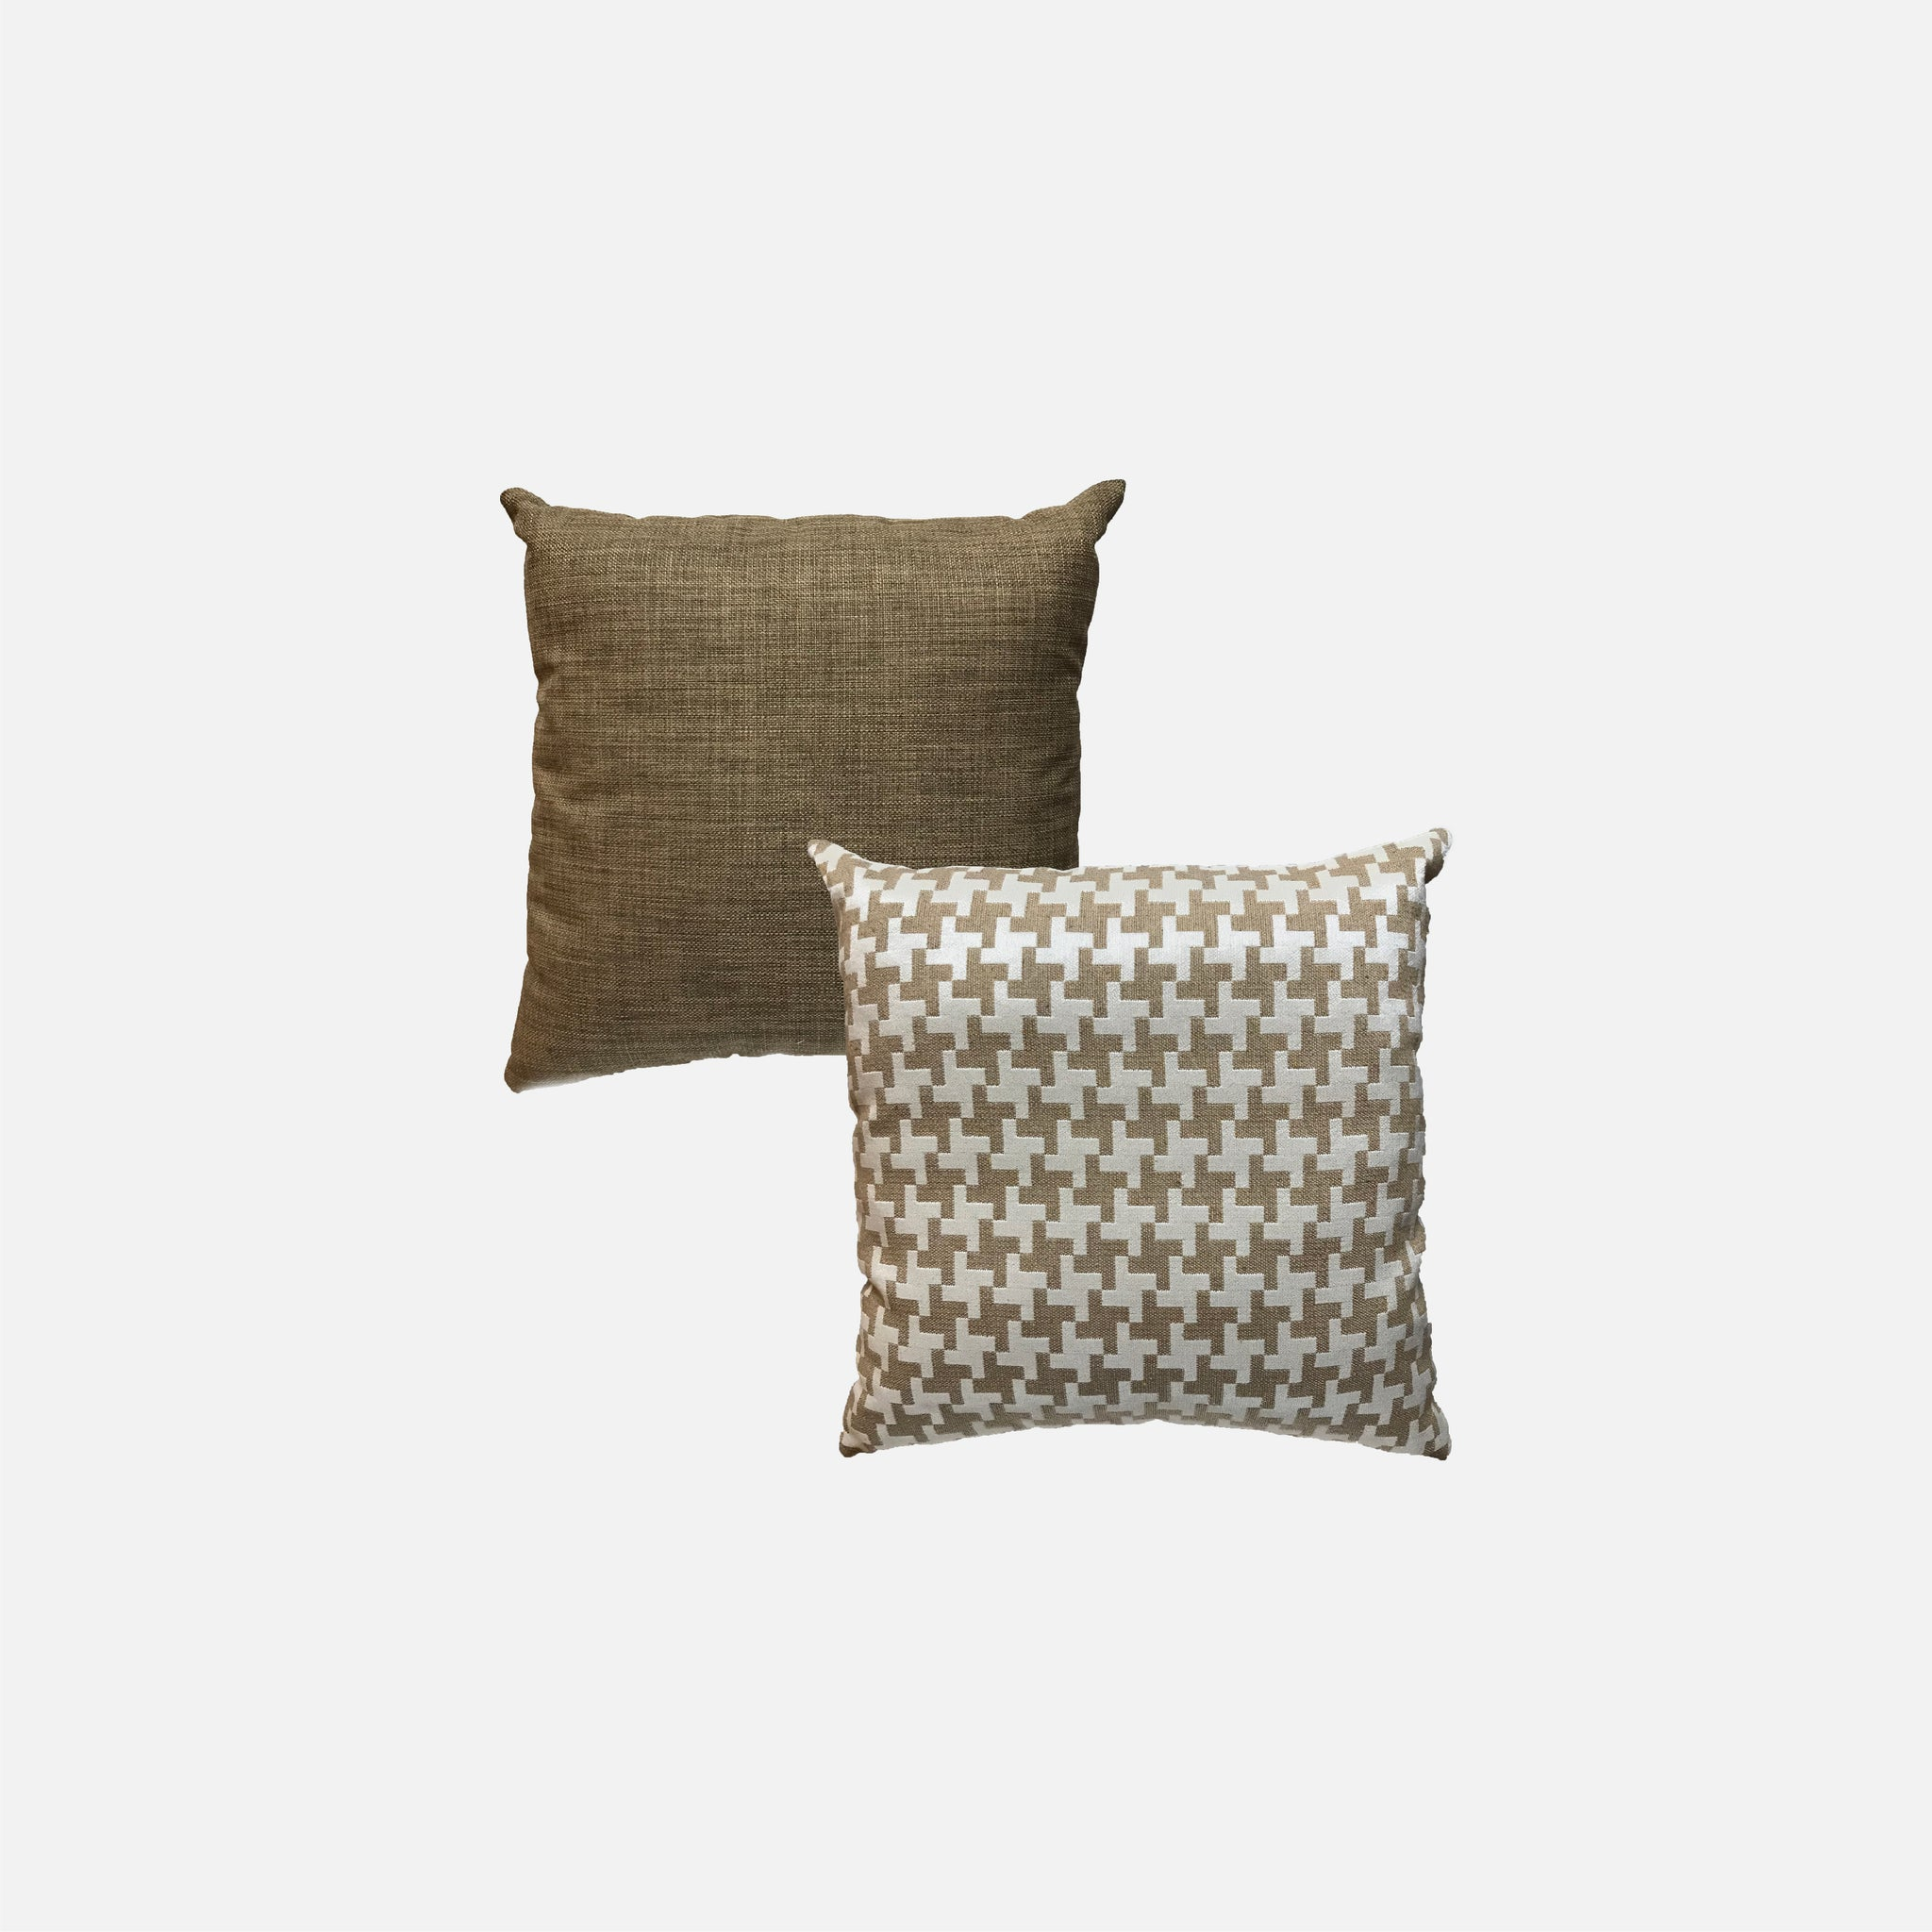 Designer Pillow (Square pillow) Gingham Brown